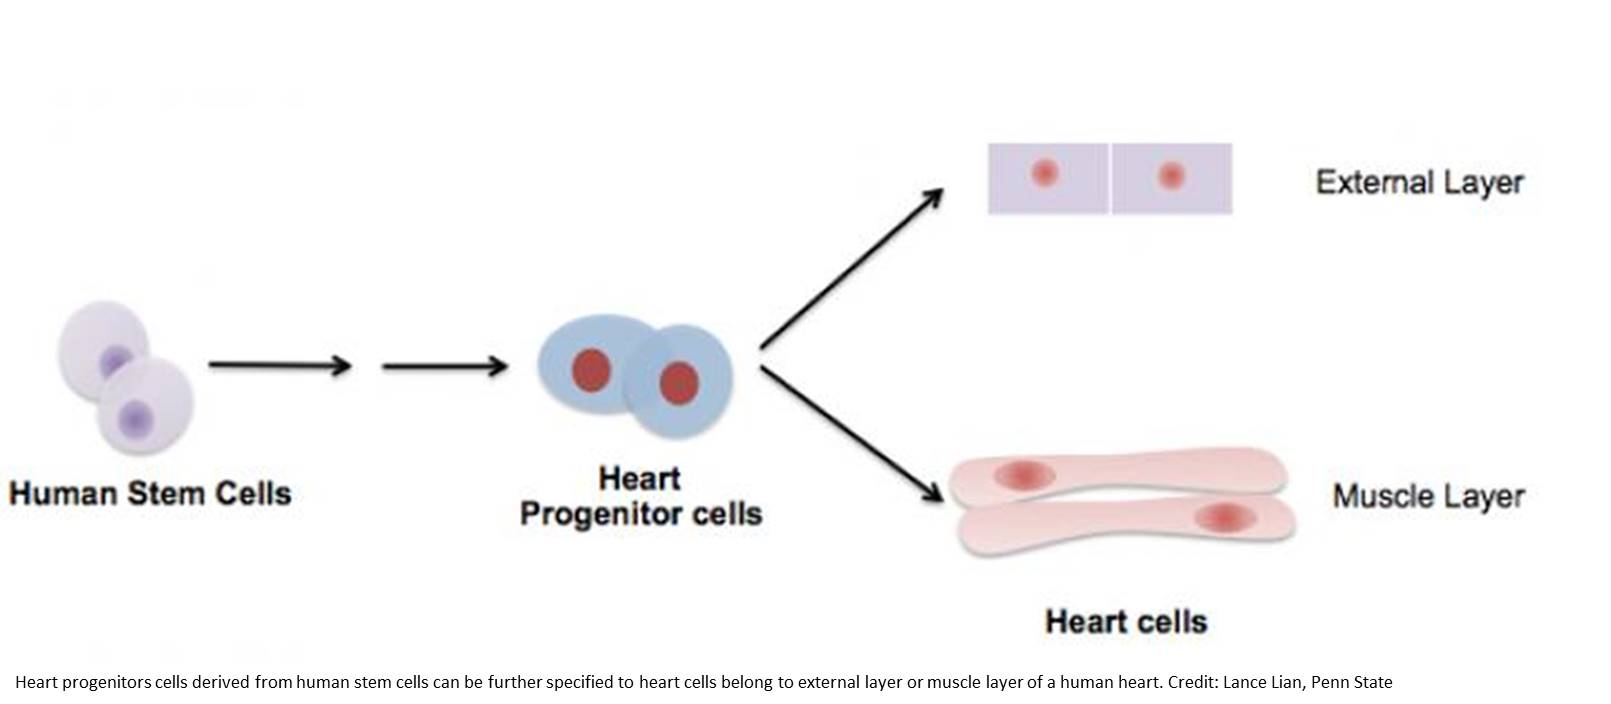 External layer of a human heart was generated from stem cells